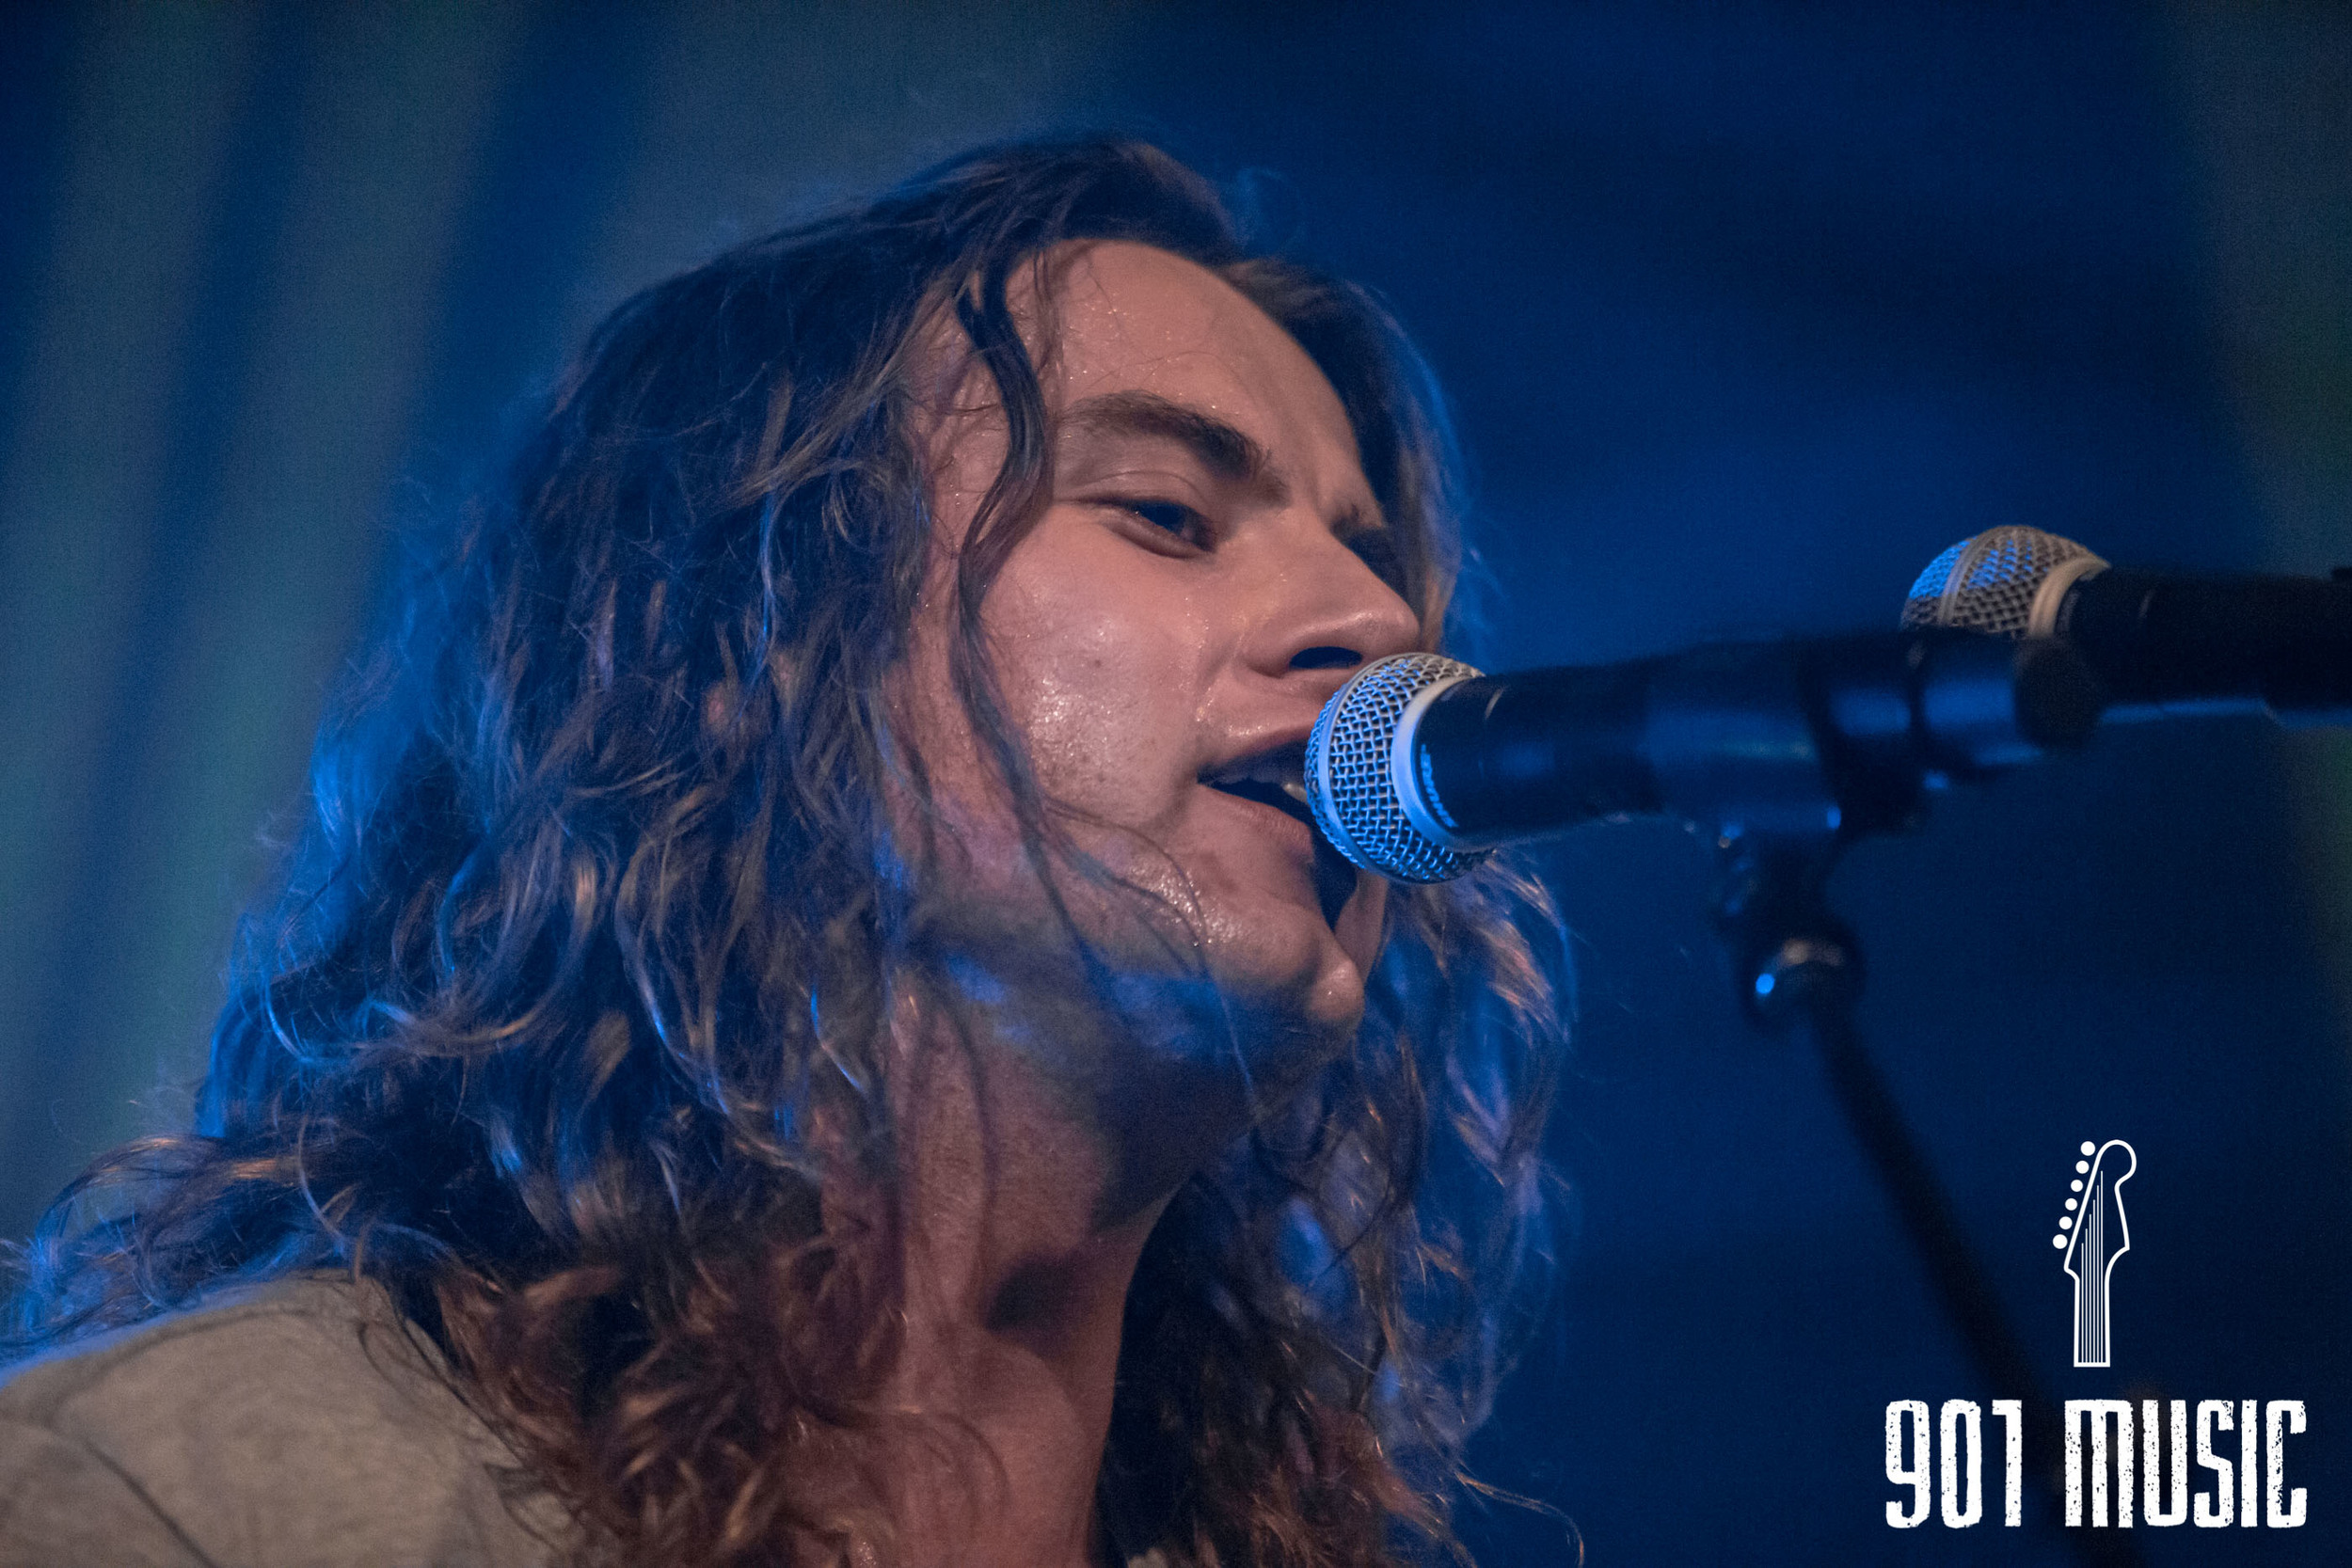 na-02122016-Judah and the Lion-13.jpg